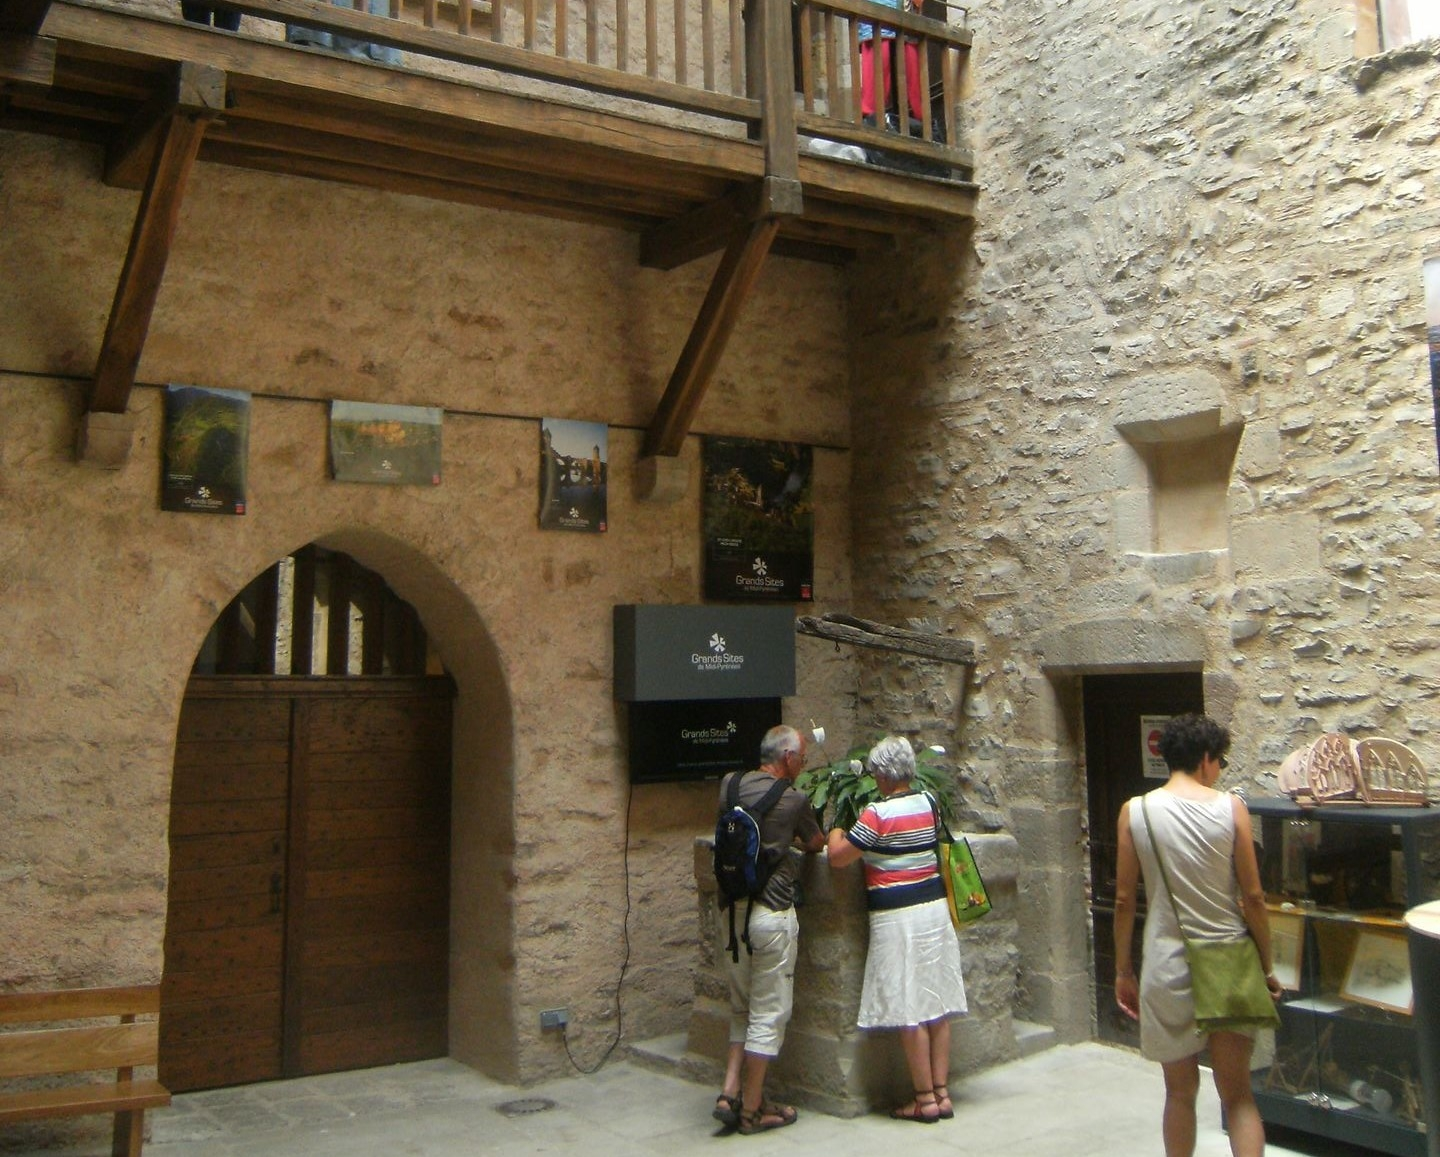 is_office-du-tourisme-cordes_v2.jpg